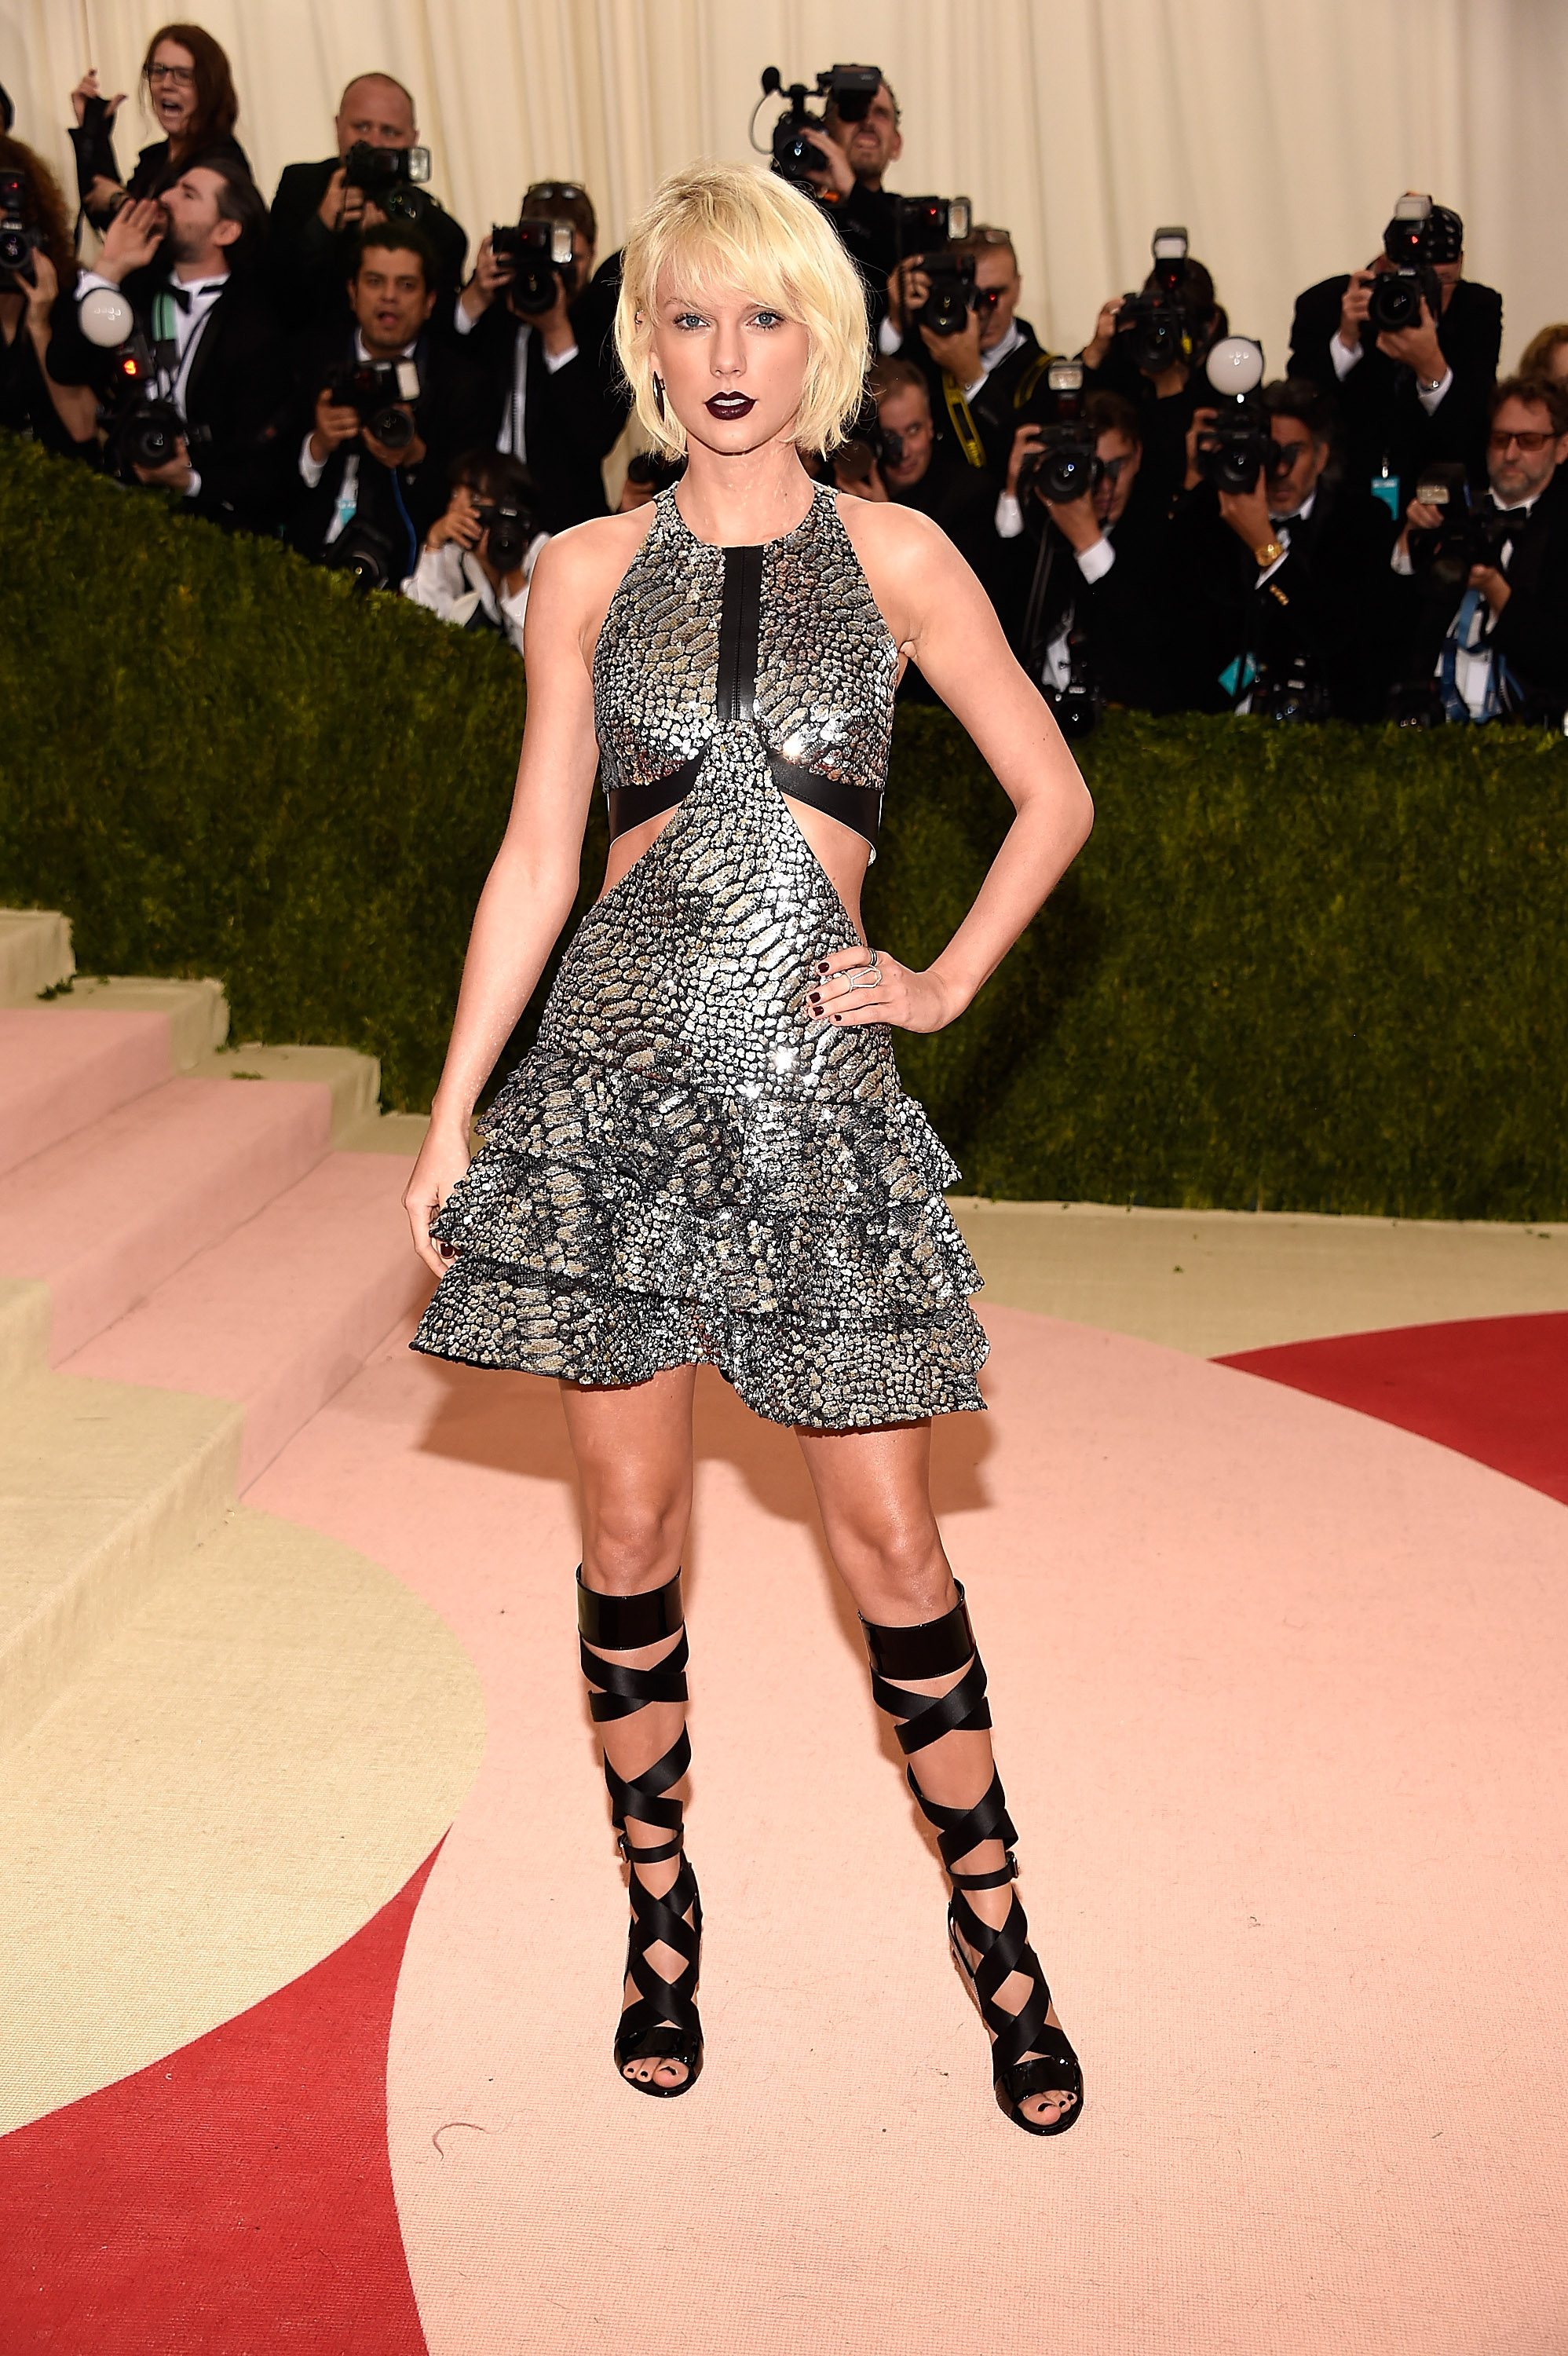 Taylor Swift attends  Manus x Machina: Fashion In An Age Of Technology  Costume Institute Gala at Metropolitan Museum of Art on May 2, 2016 in New York City.